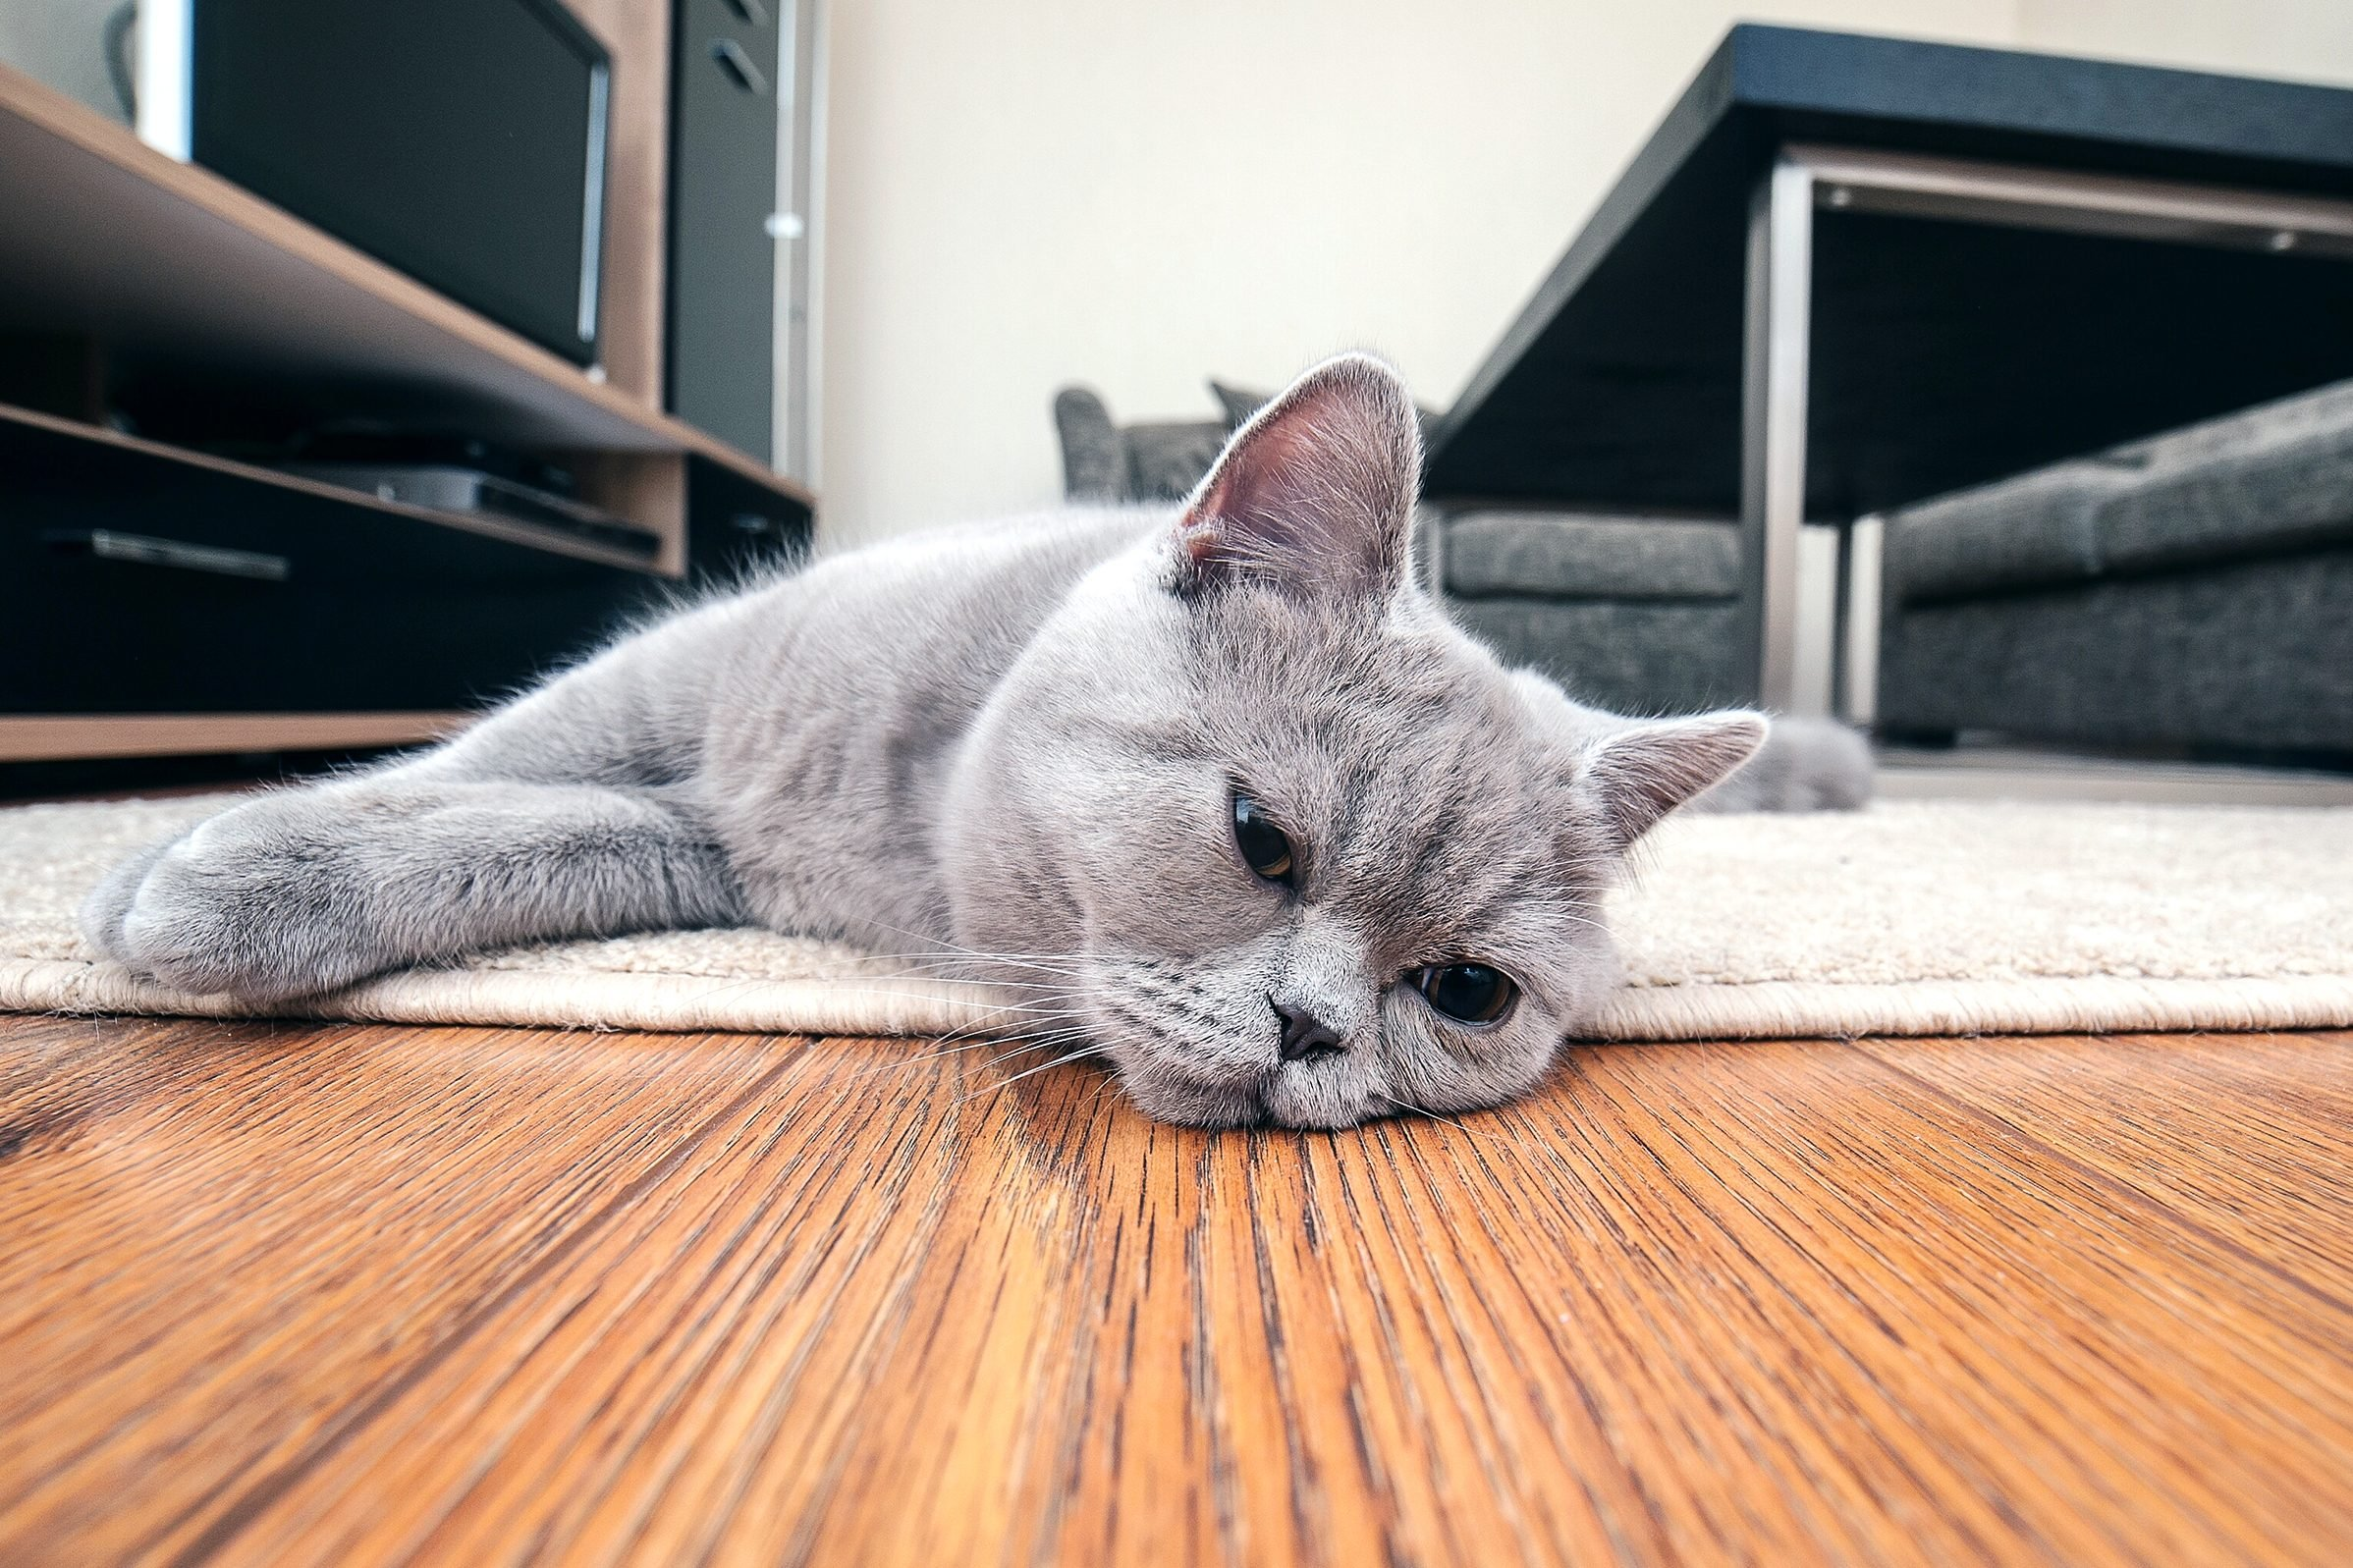 do cats get colds?